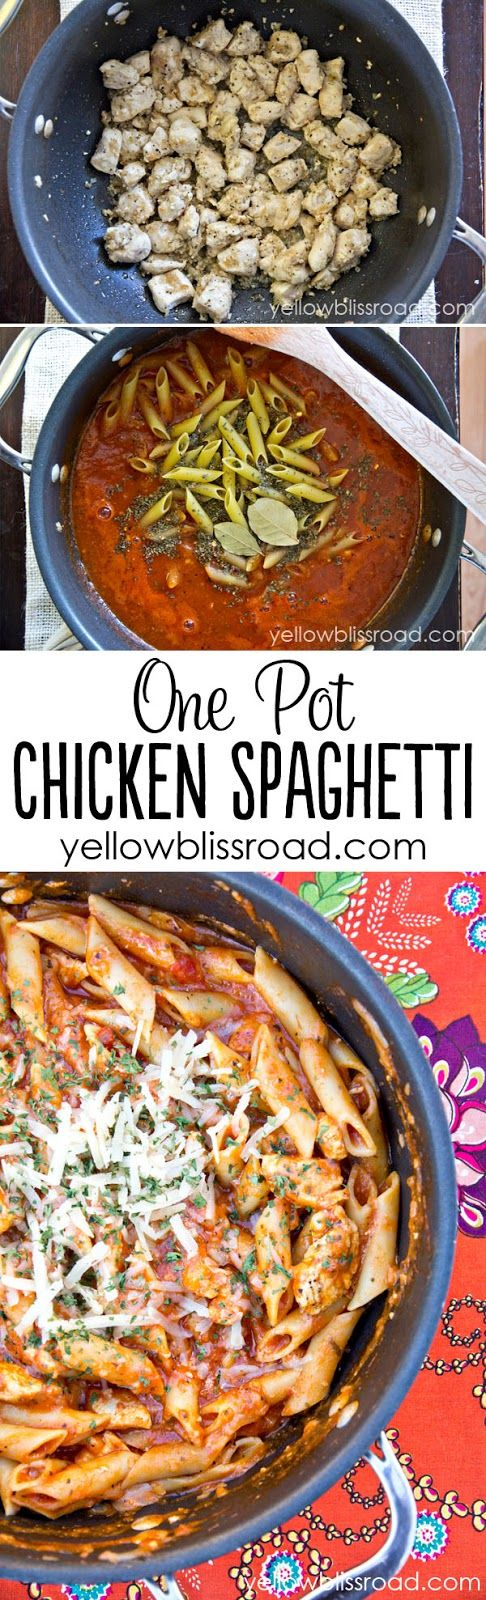 One Pot Chicken Spaghetti Pasta - The entire meal cooks in one pot, for a quick meal and easy clean up!